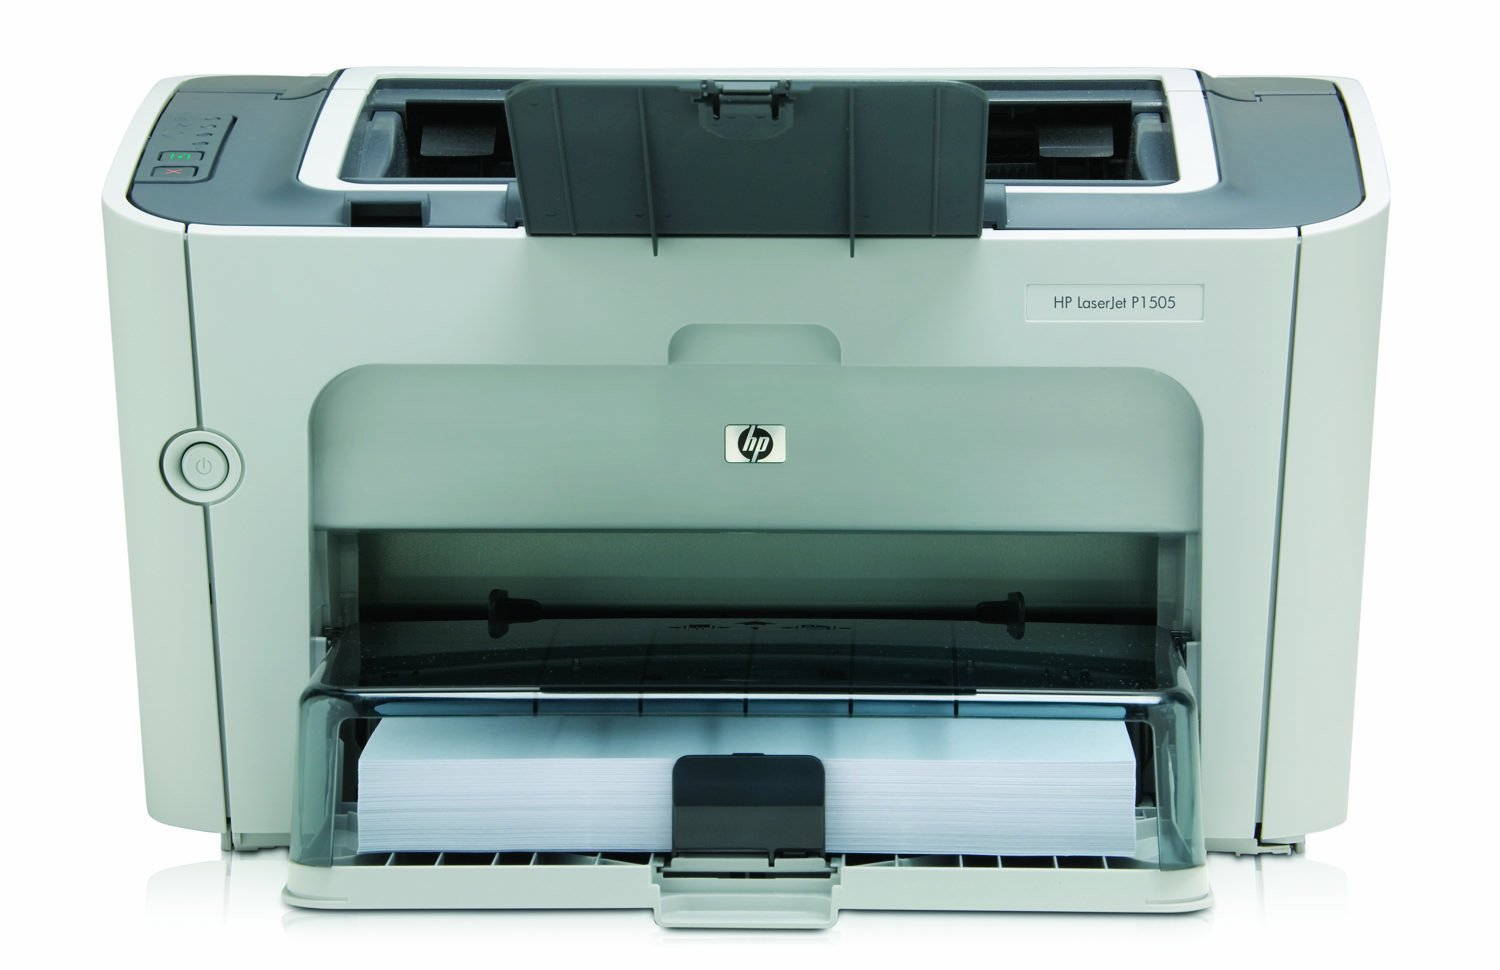 Hp laserjet p1505 drivers for mac.